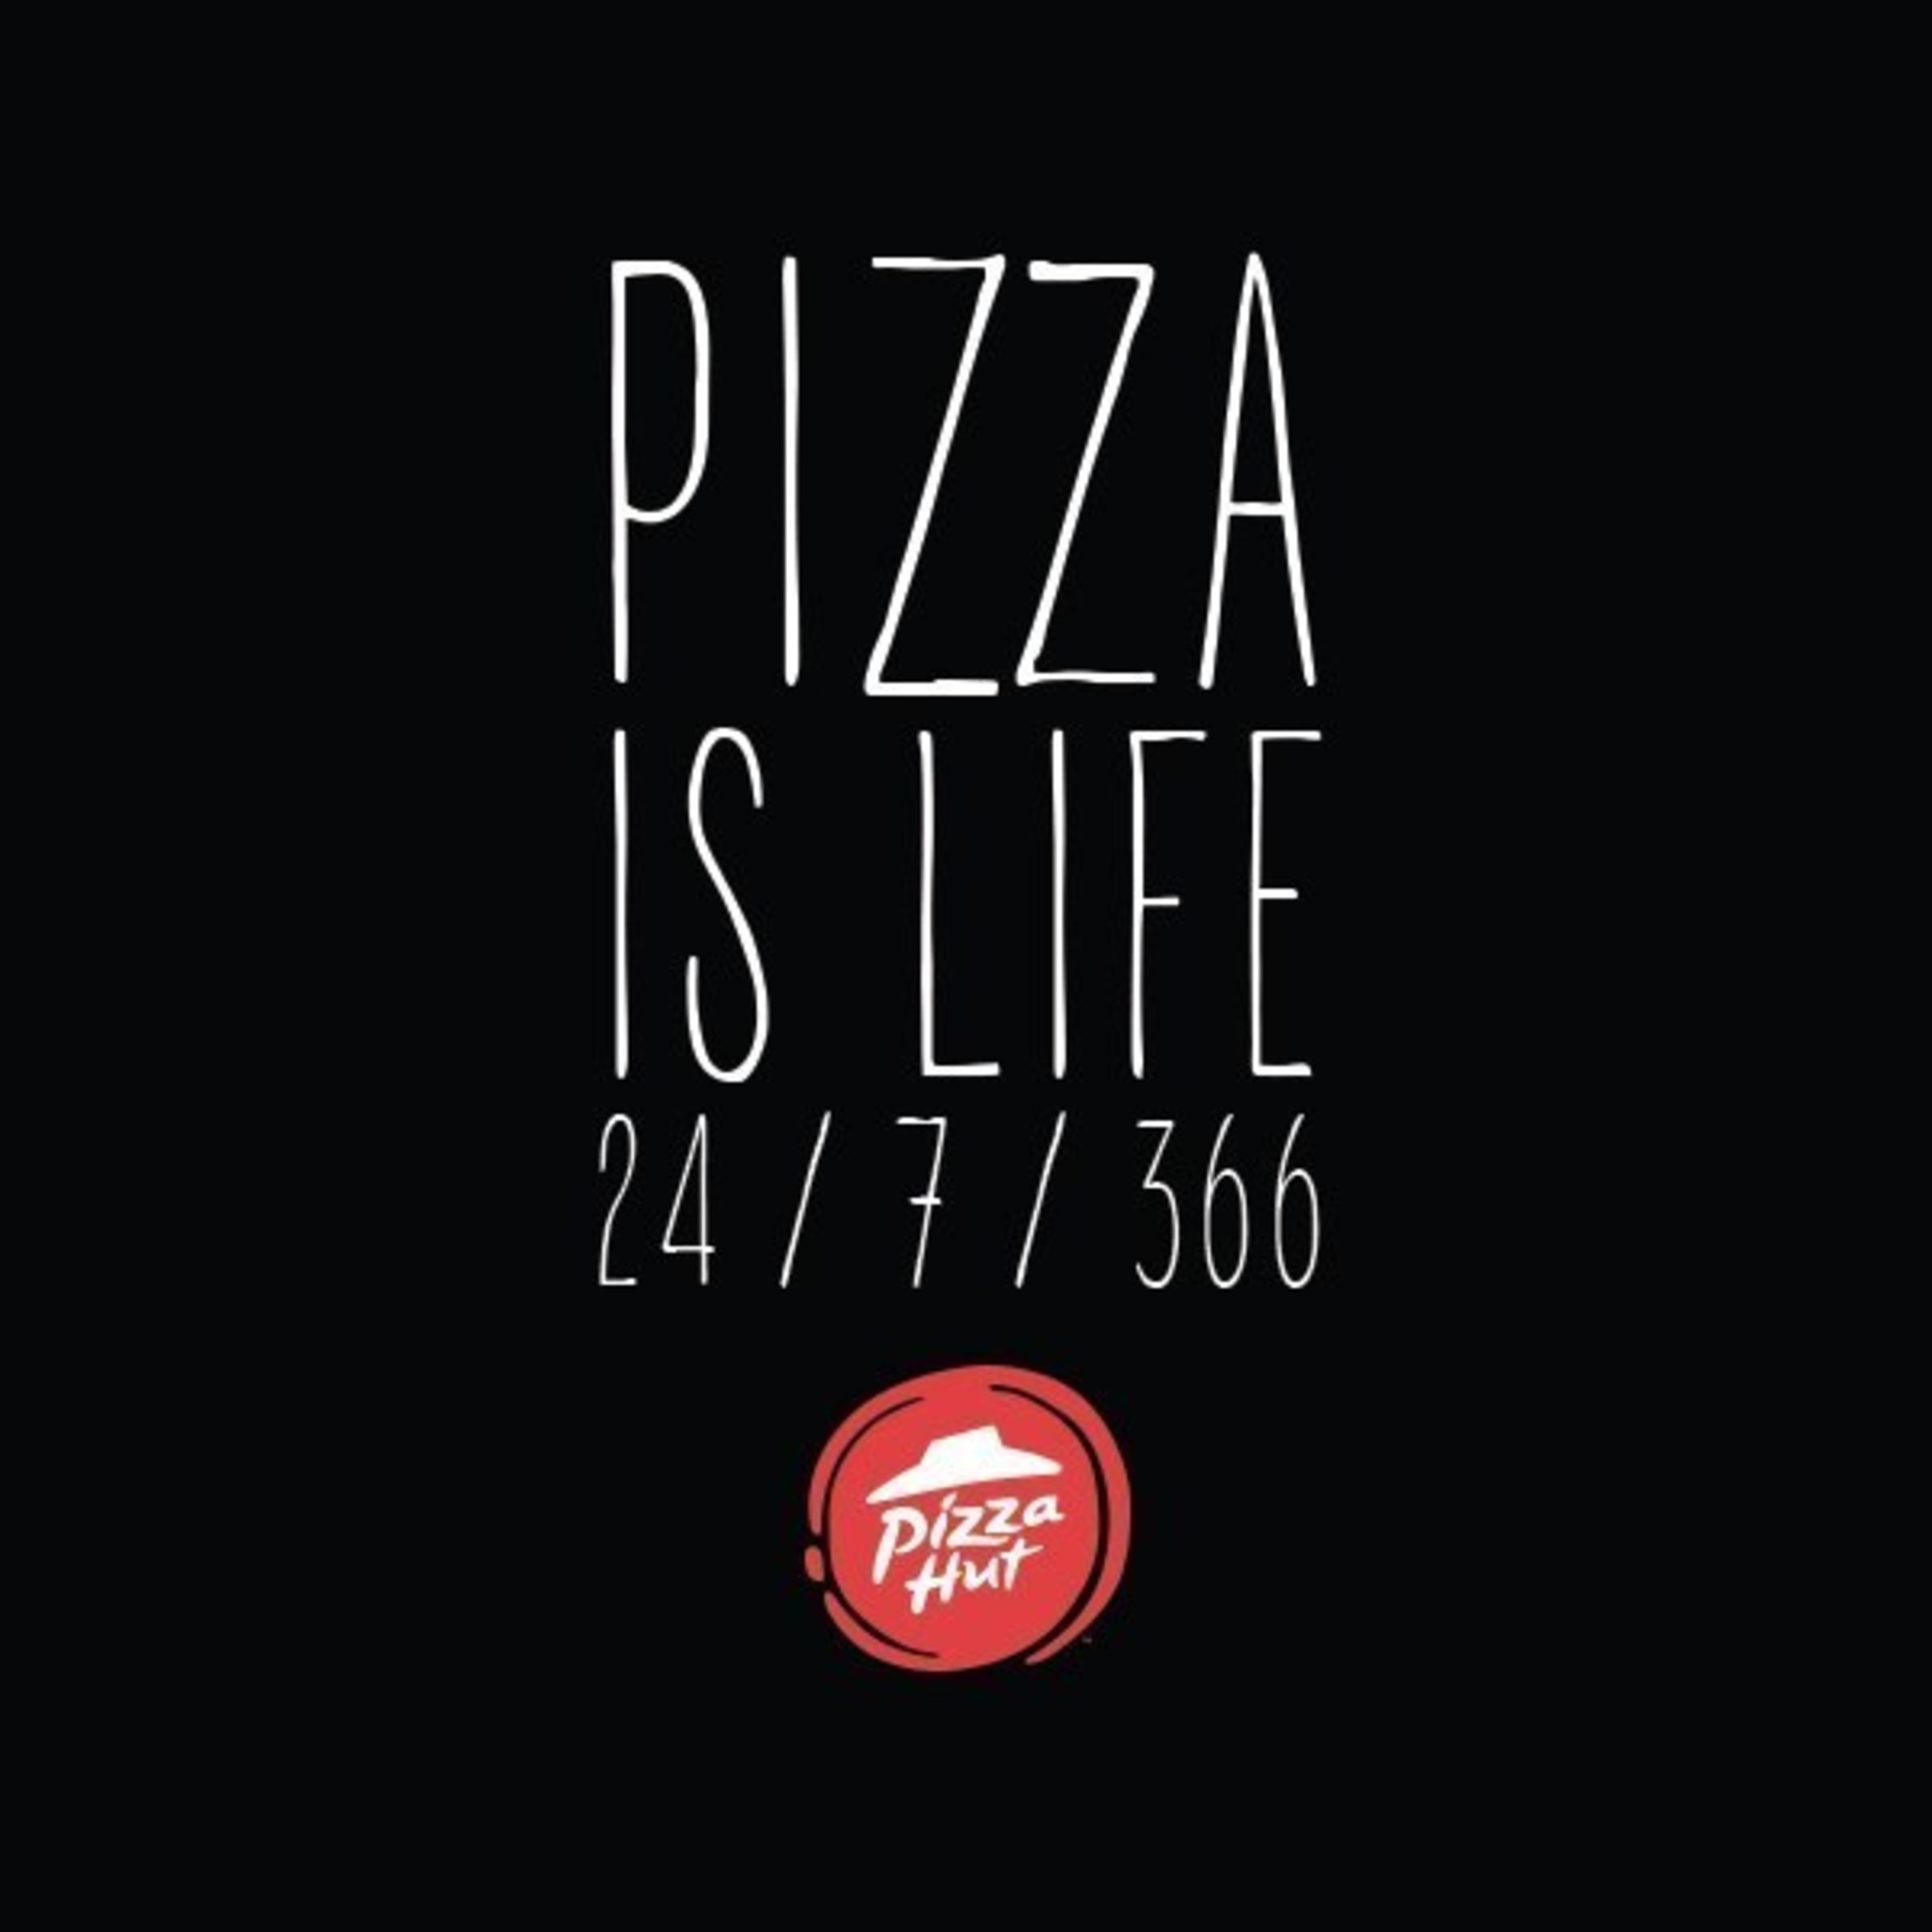 look before you leaplings pizza hut makes birthday wishes come true for pizza lovers born on leap day